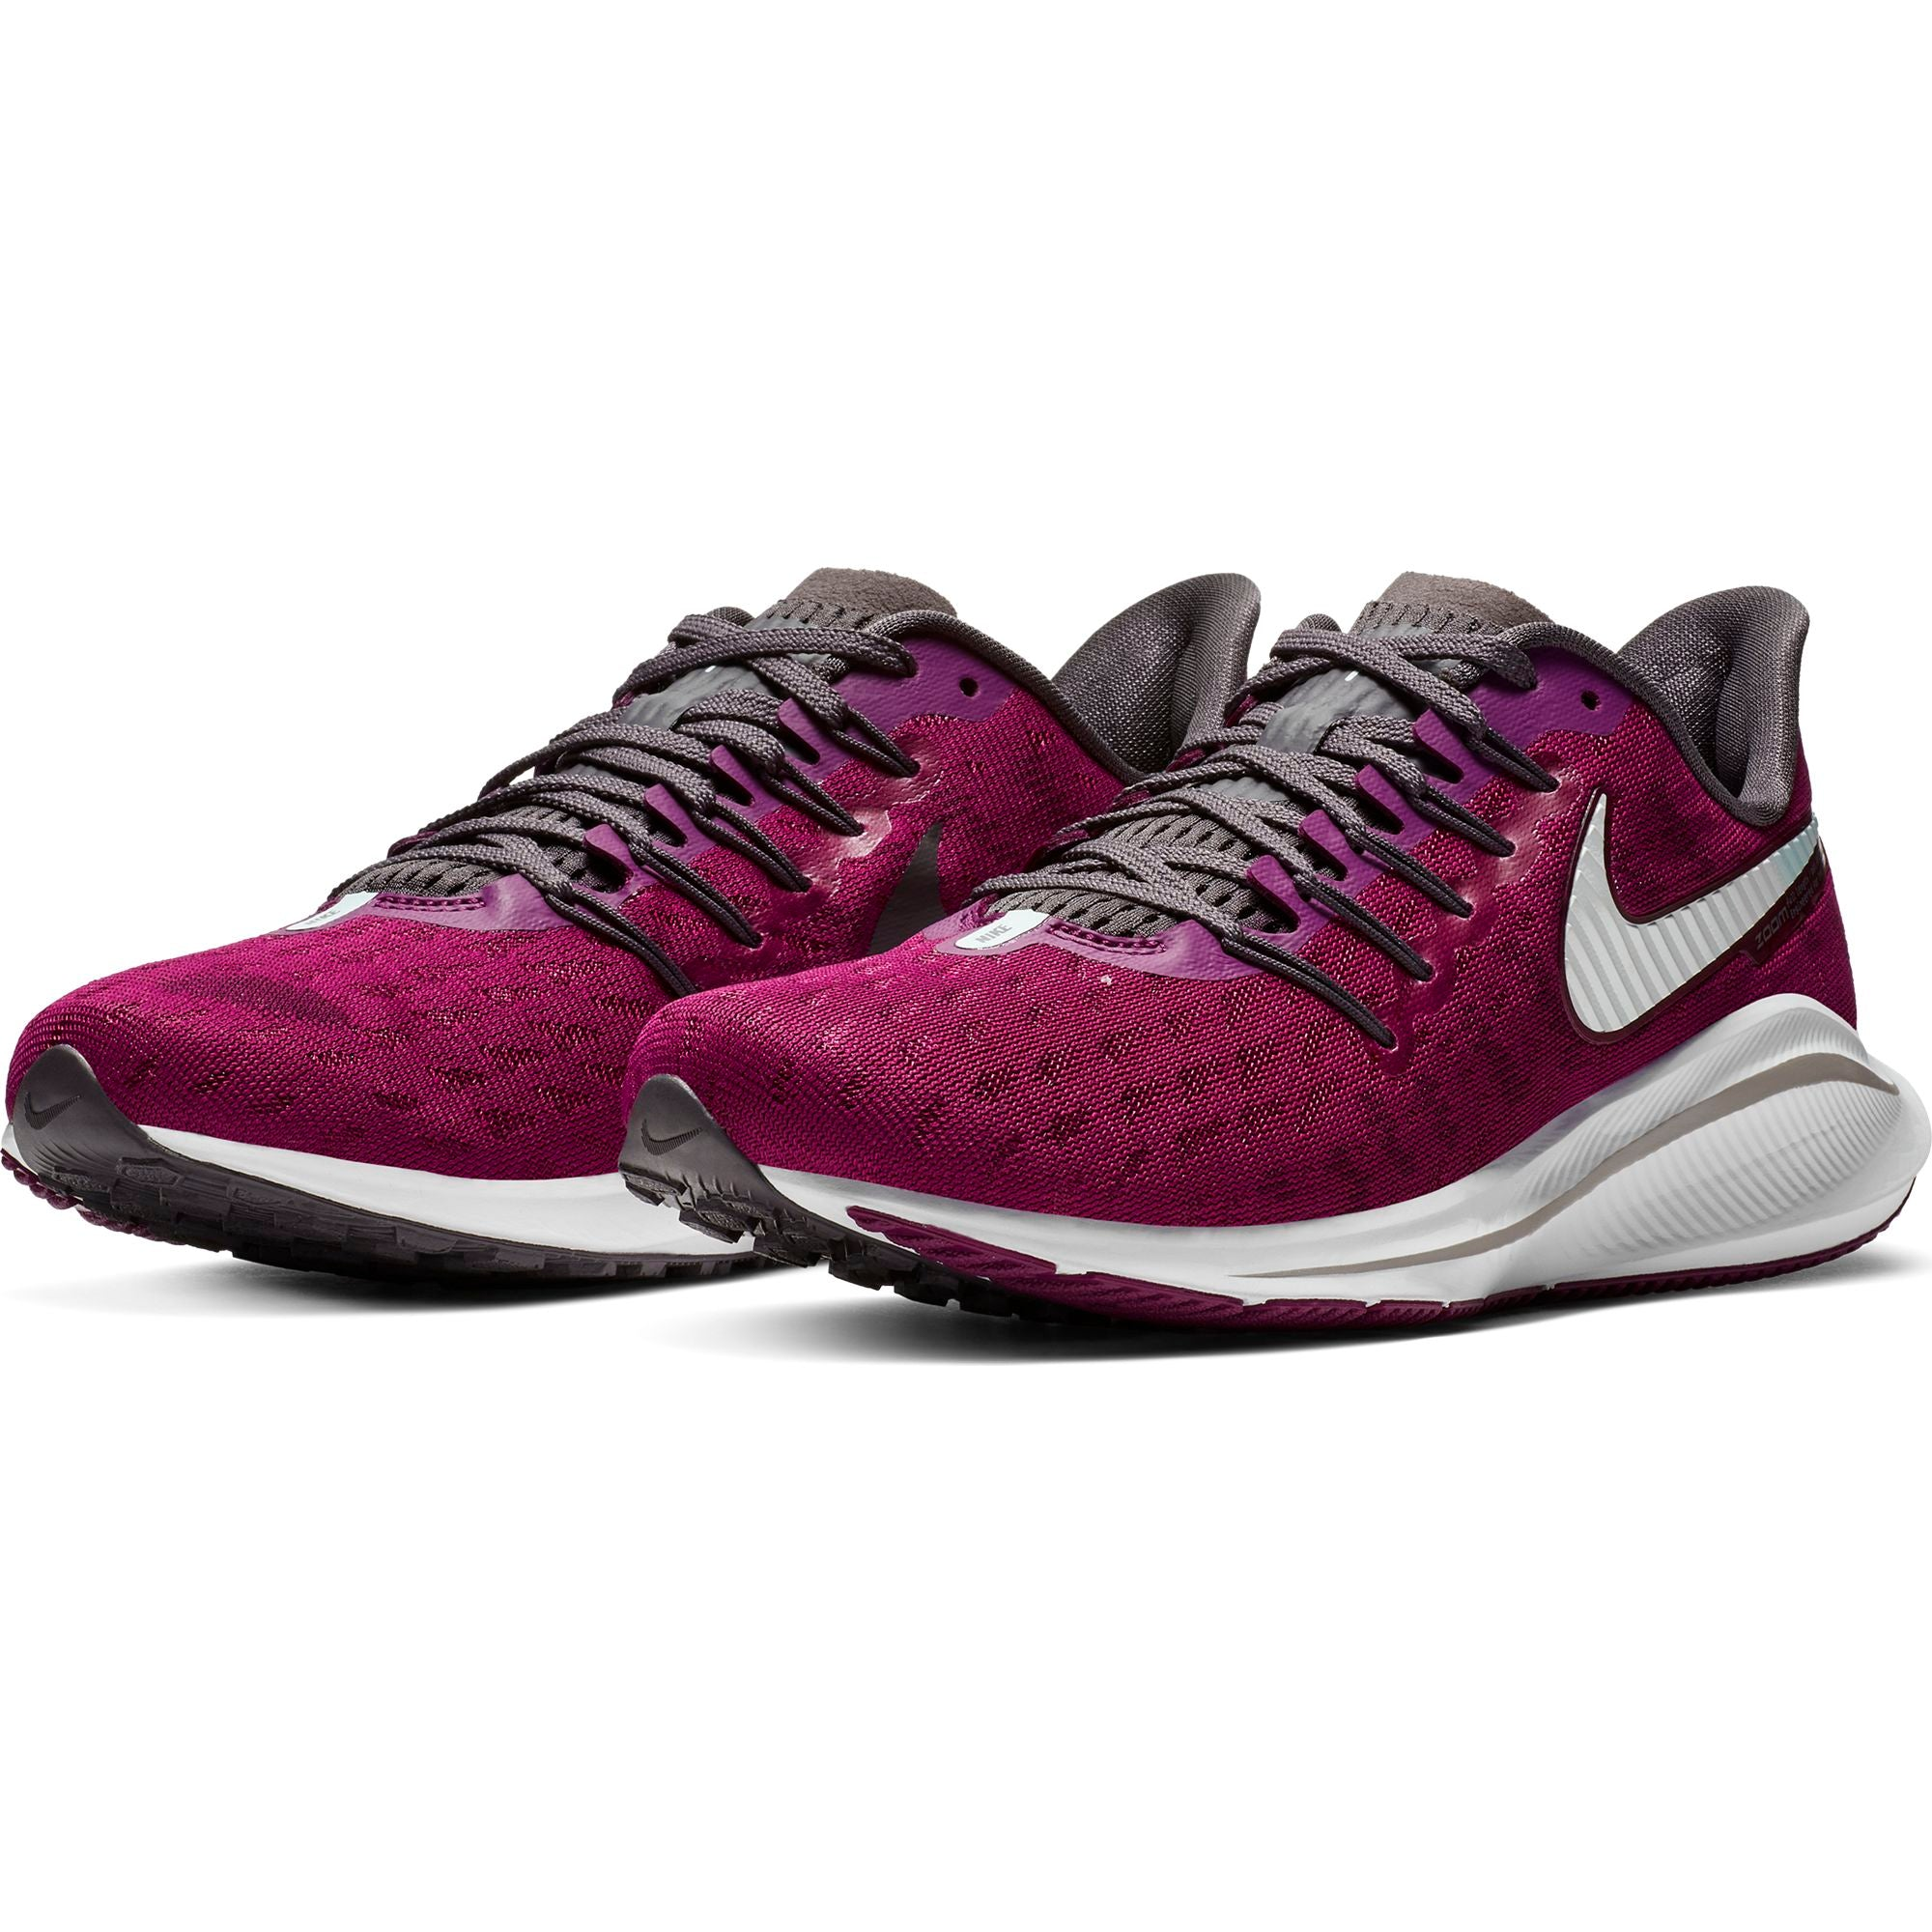 low priced 9898a 45fc0 ... Women s Air Zoom Vomero 14 Running Shoe - True Berry White Thunder  Grey  ...